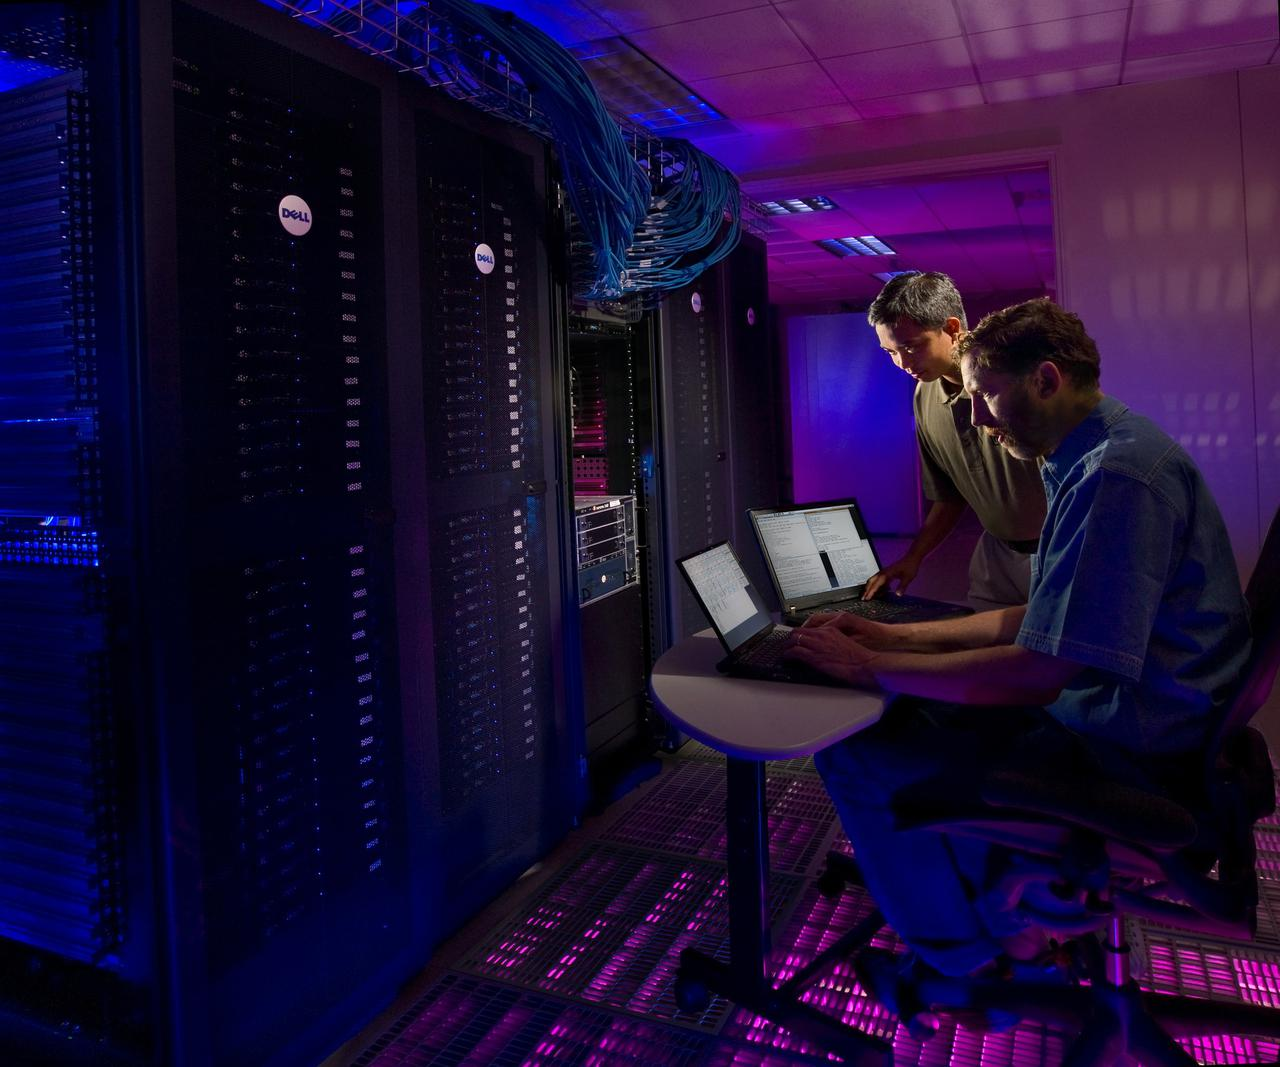 Image of two Medford computer specialists working on a server in a room lit with purple light.